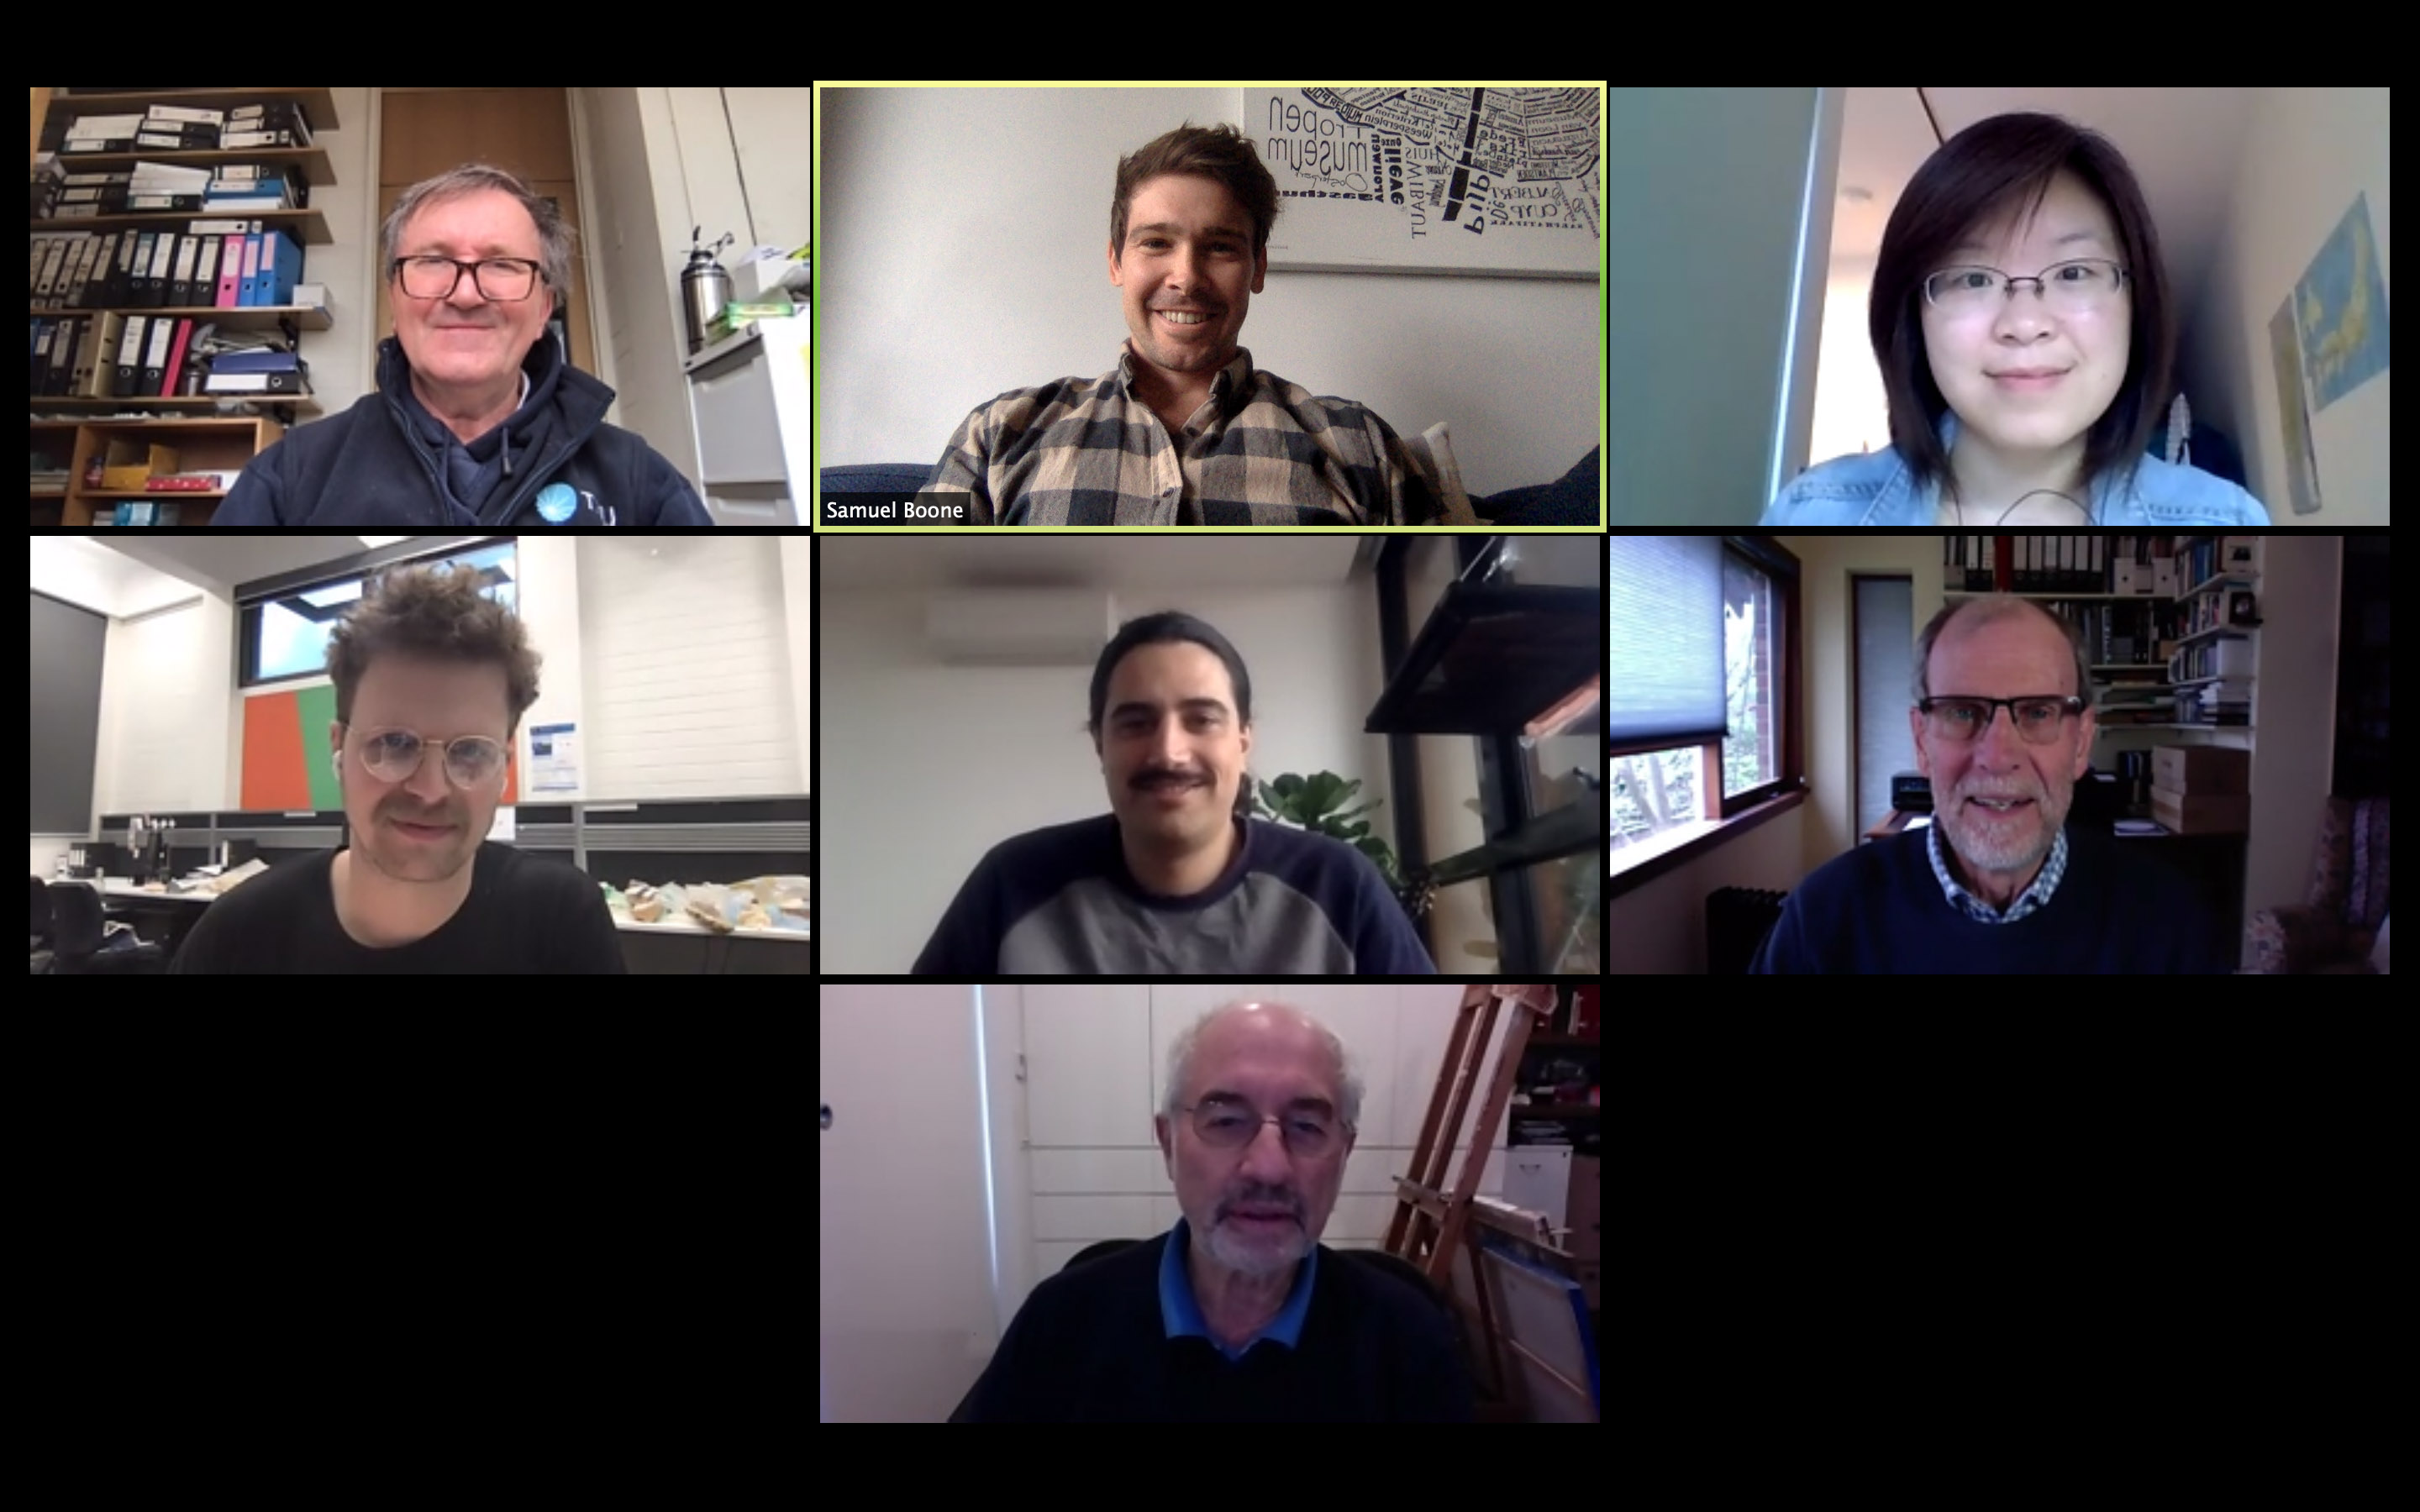 Virtual meeting in the COVID era, 2020